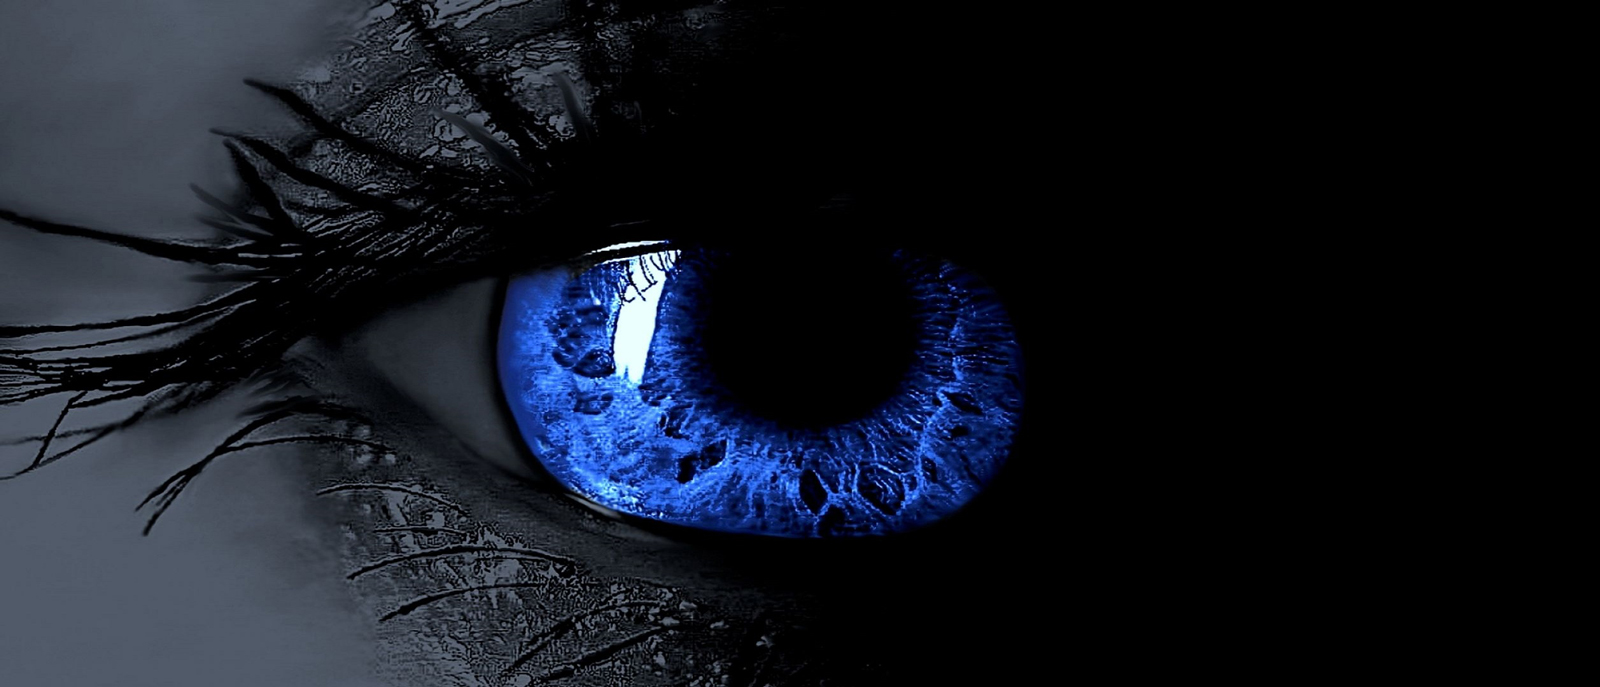 wallpapers hd ojos azules